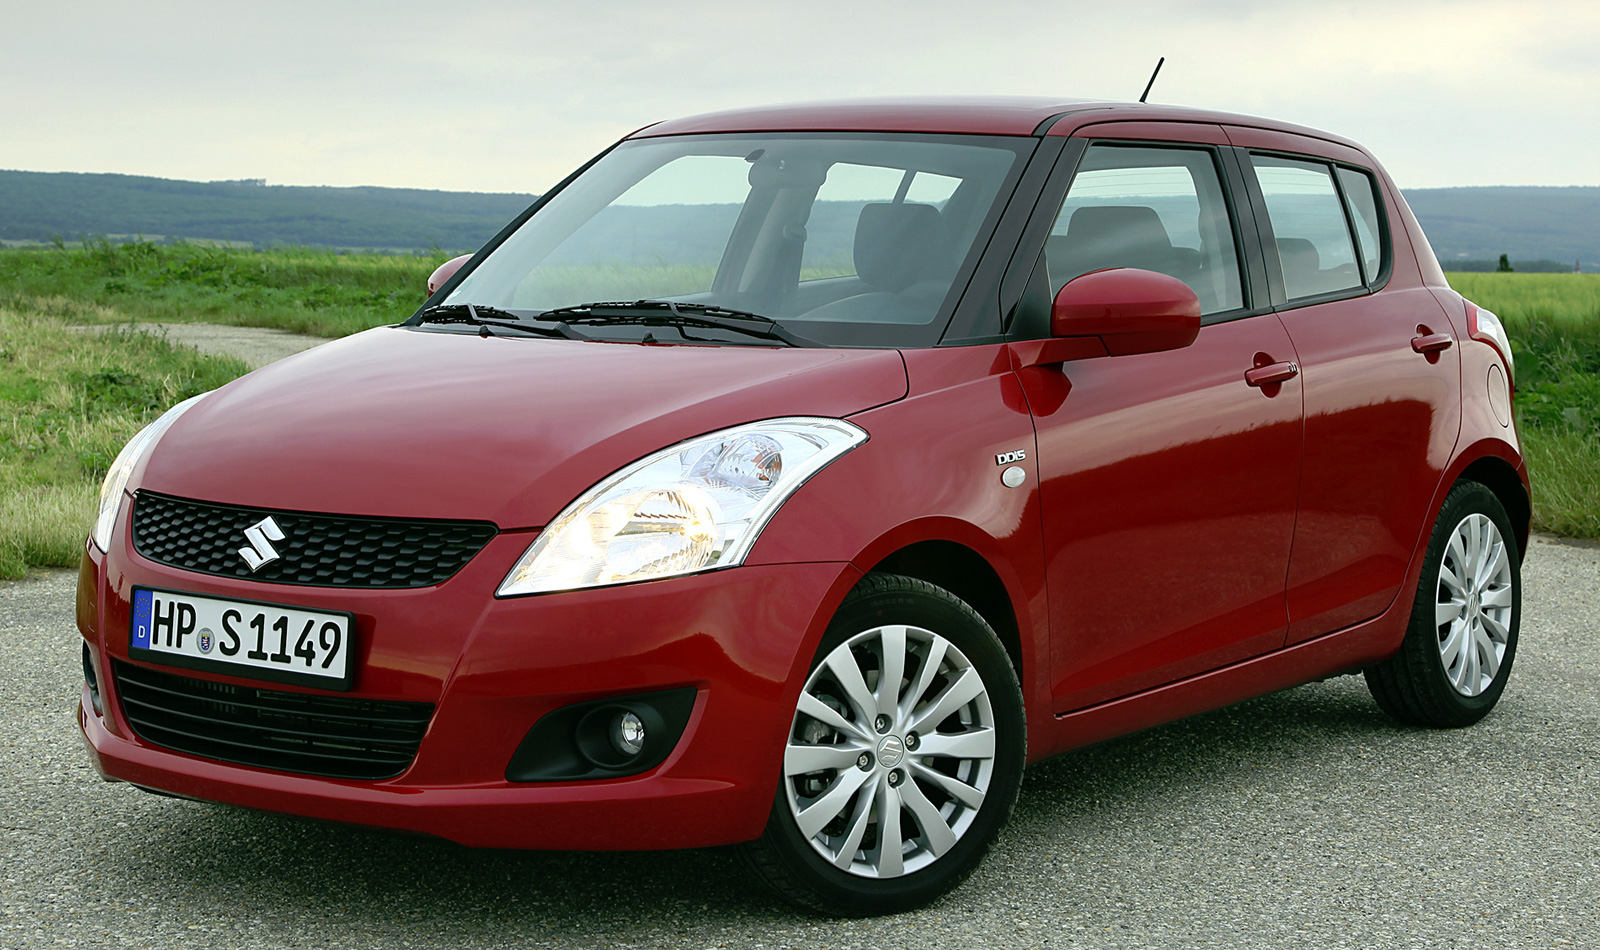 Suzuki Swift 3 (2010-2017)